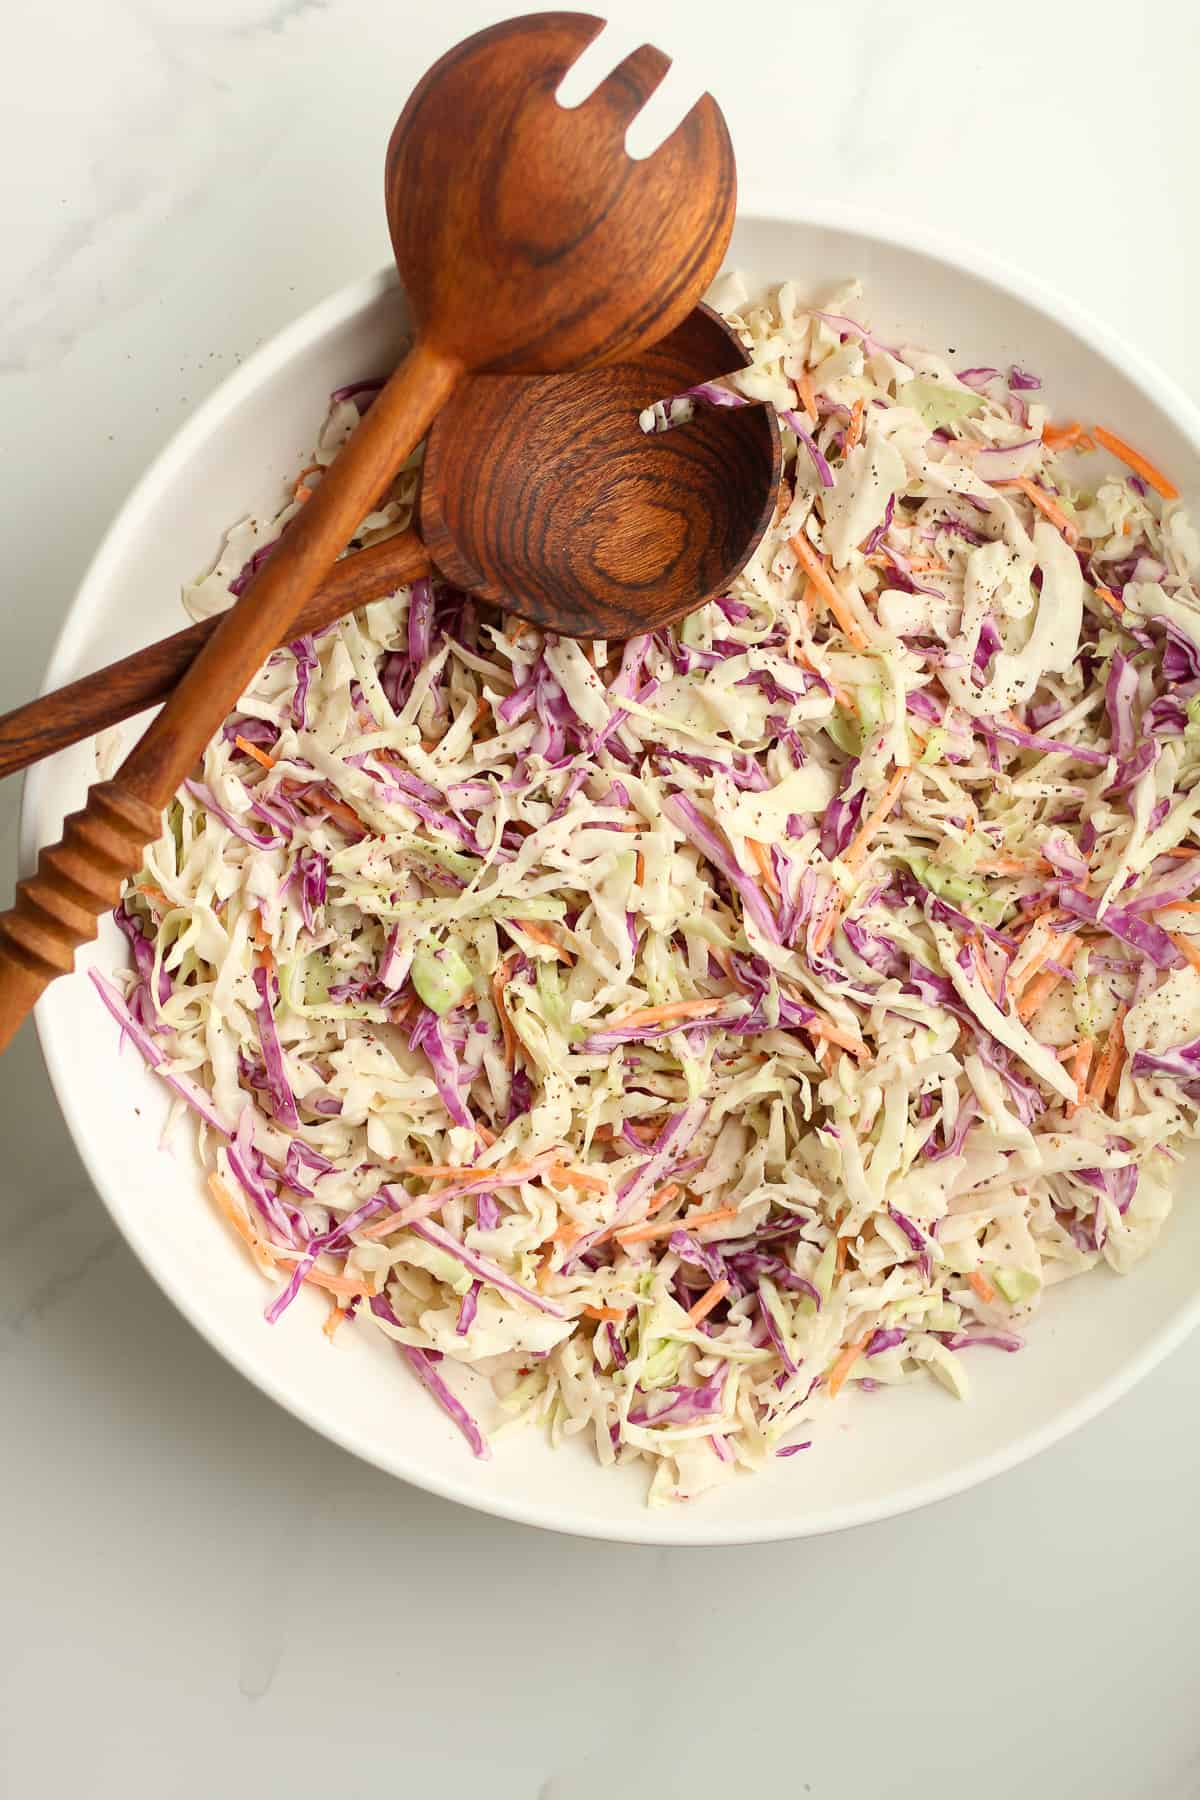 A large white bowl of creamy coleslaw with two spoons.